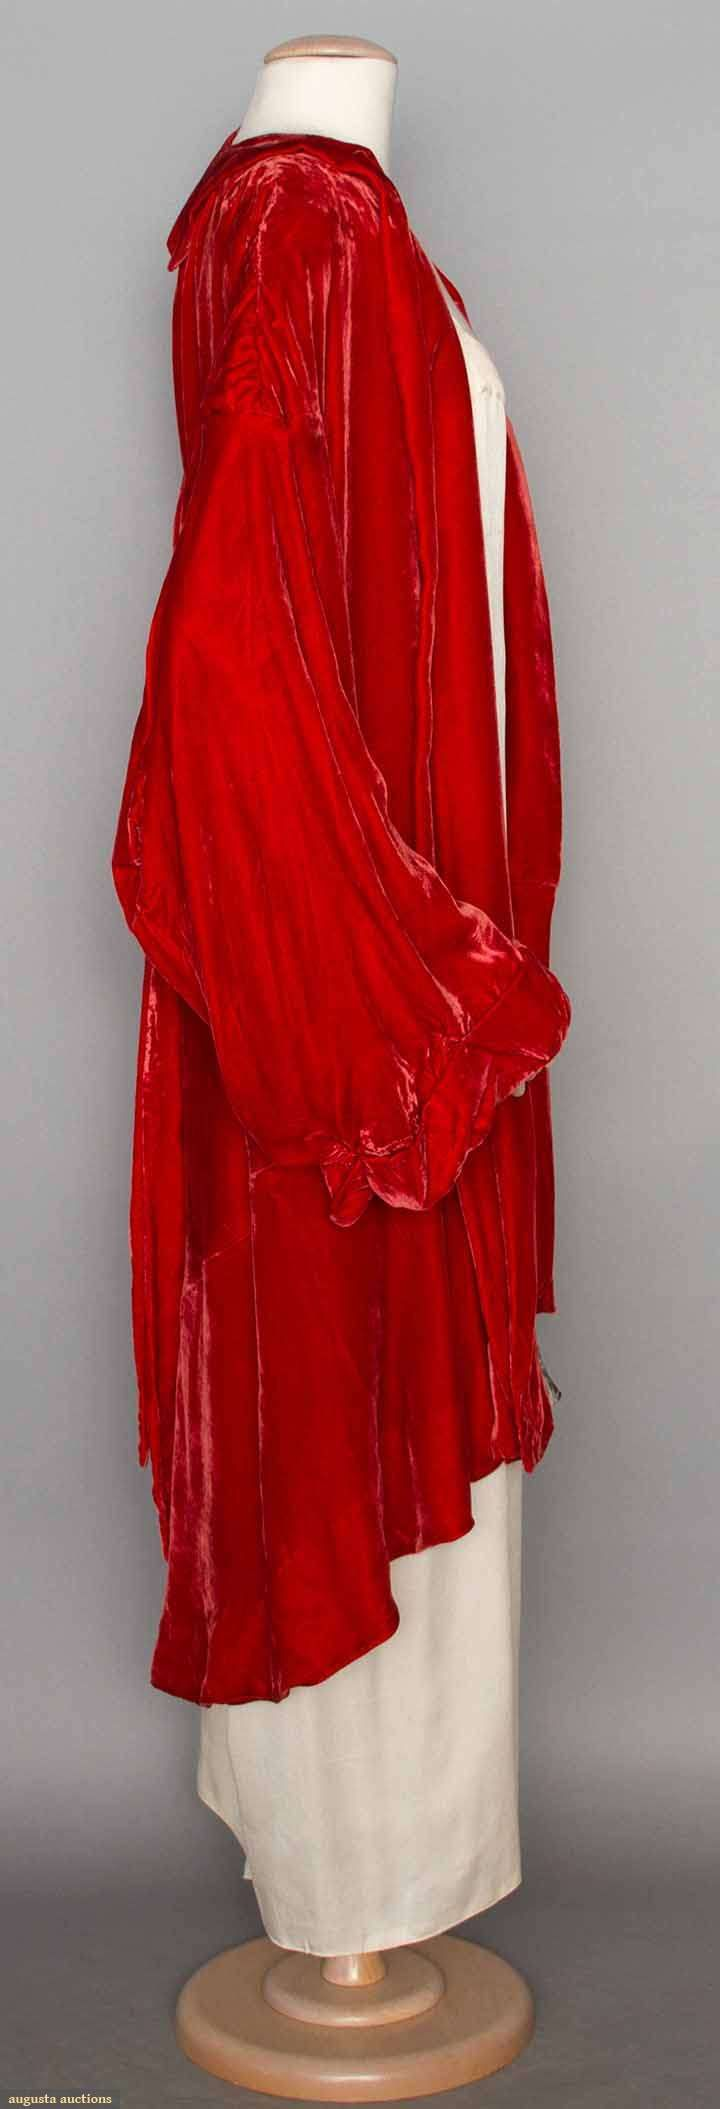 LUCILE PARAY EVENING COAT, PARIS, c. 1930. Coral silk velvet, bell shaped sleeve, asymmetrical hemline, lined in coral silk & white floral printed chiffon, CB tie panels, labeled. Sideway